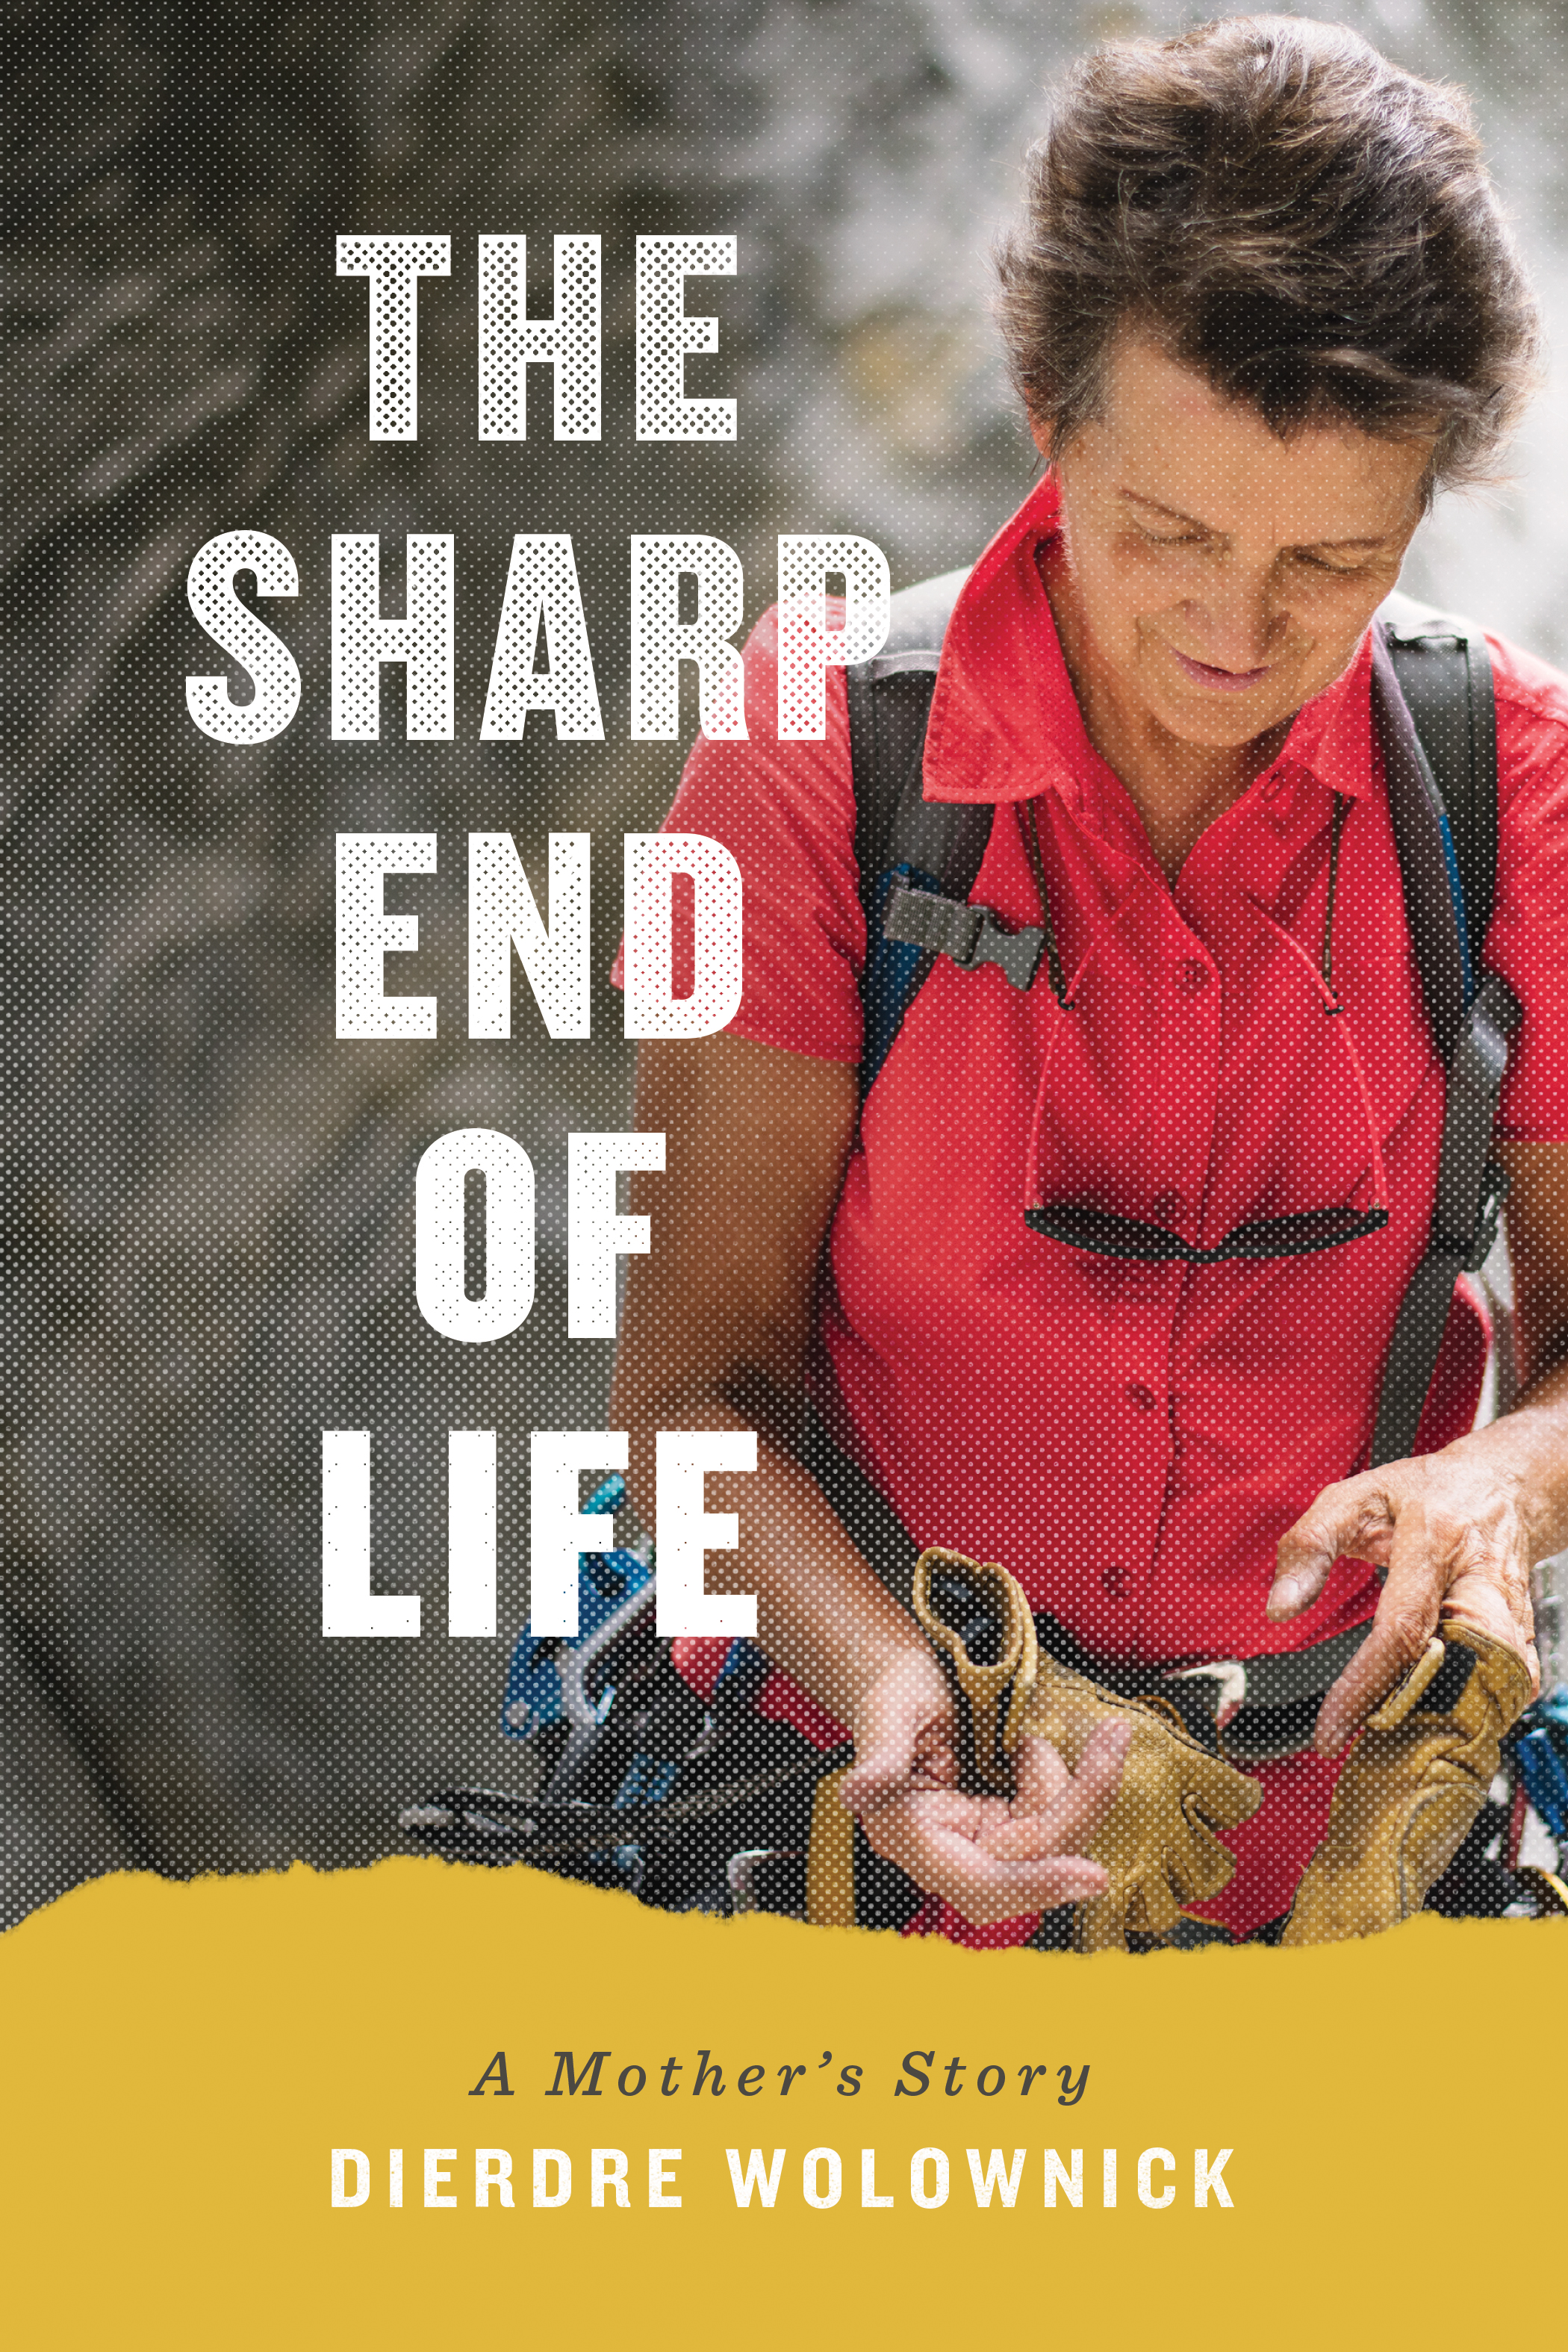 French rights for THE SHARP END OF LIFE: A MOTHER'S STORY